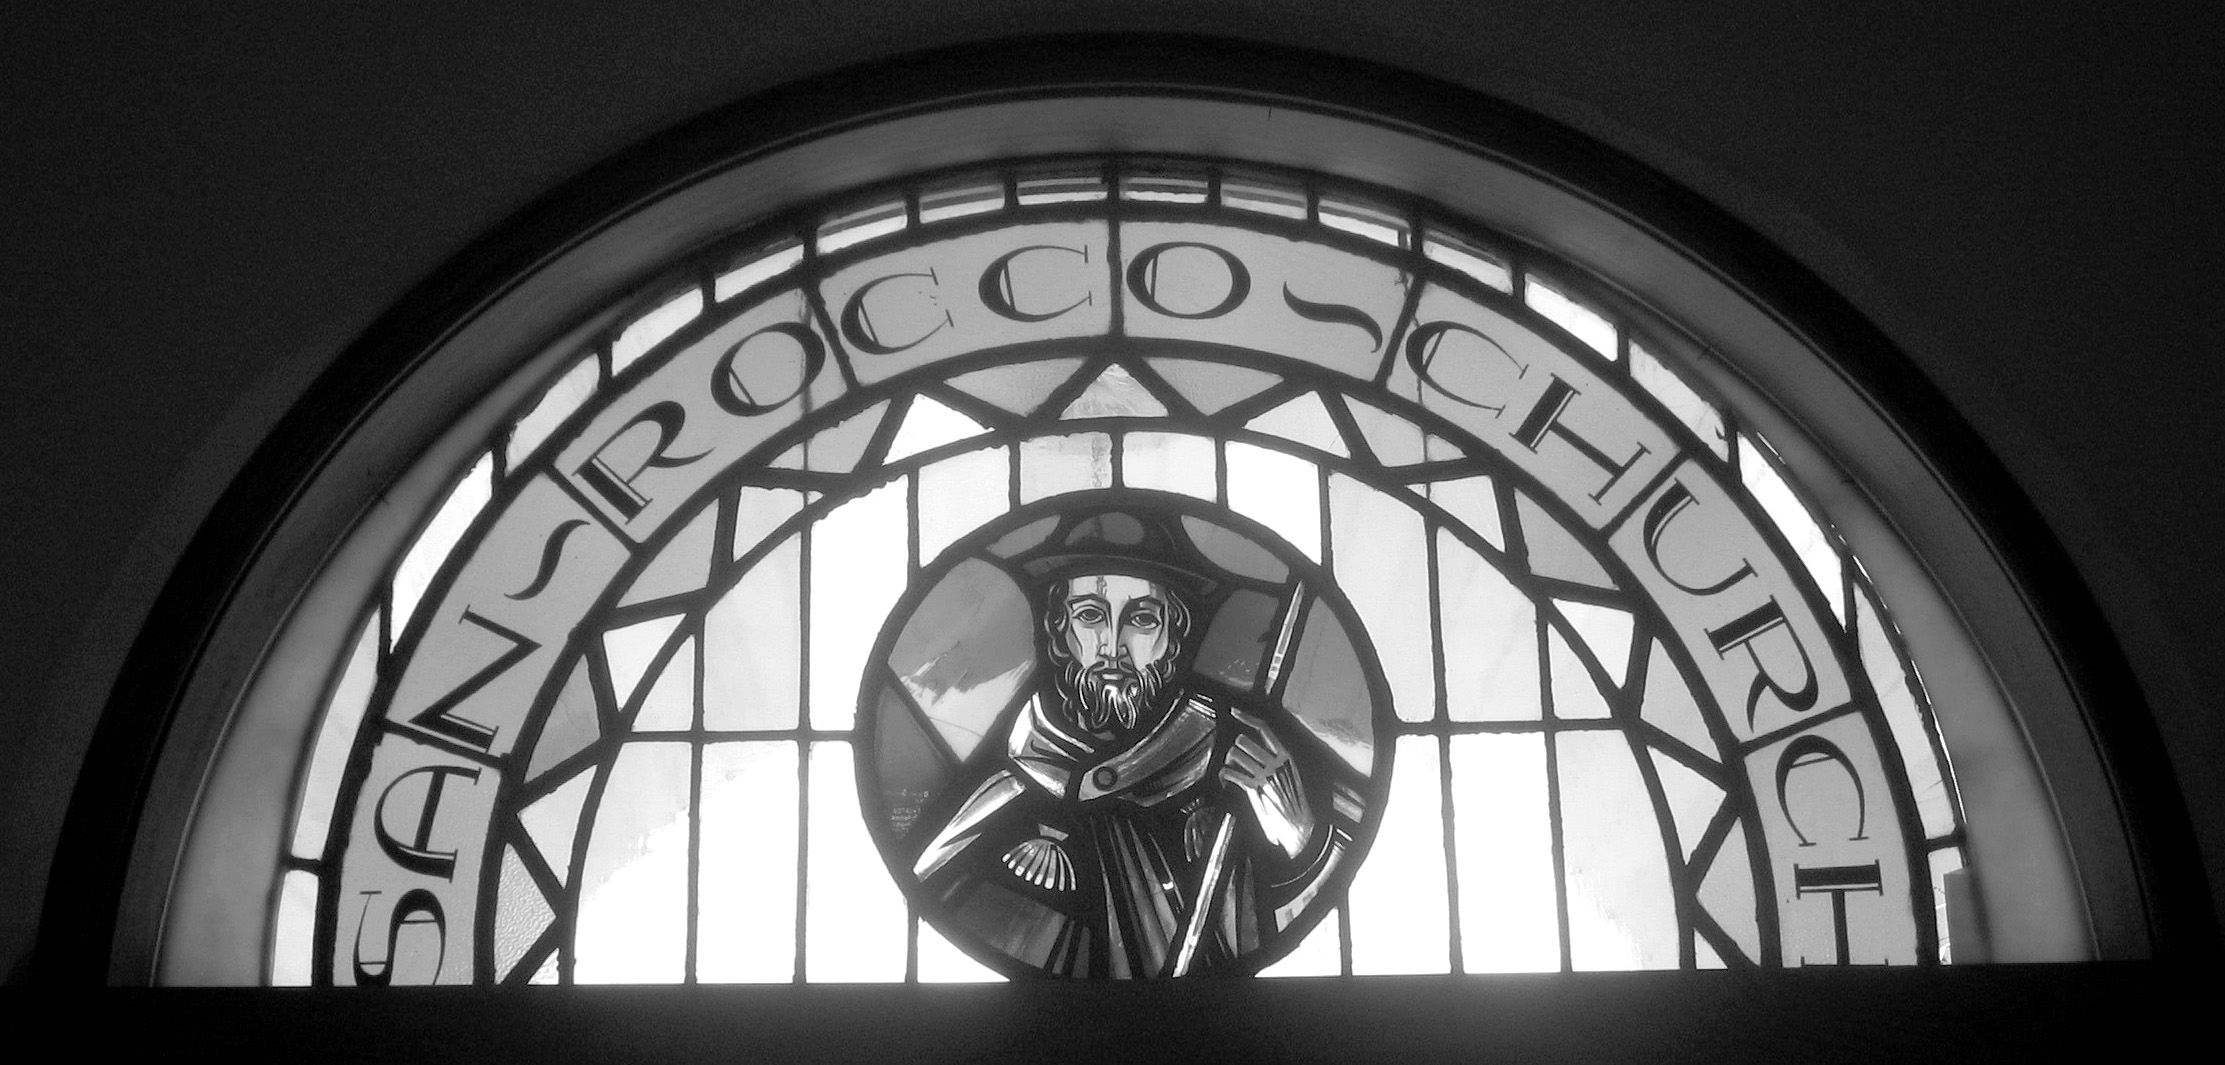 Stained Glass Window of St Rocco, above the front door of the church